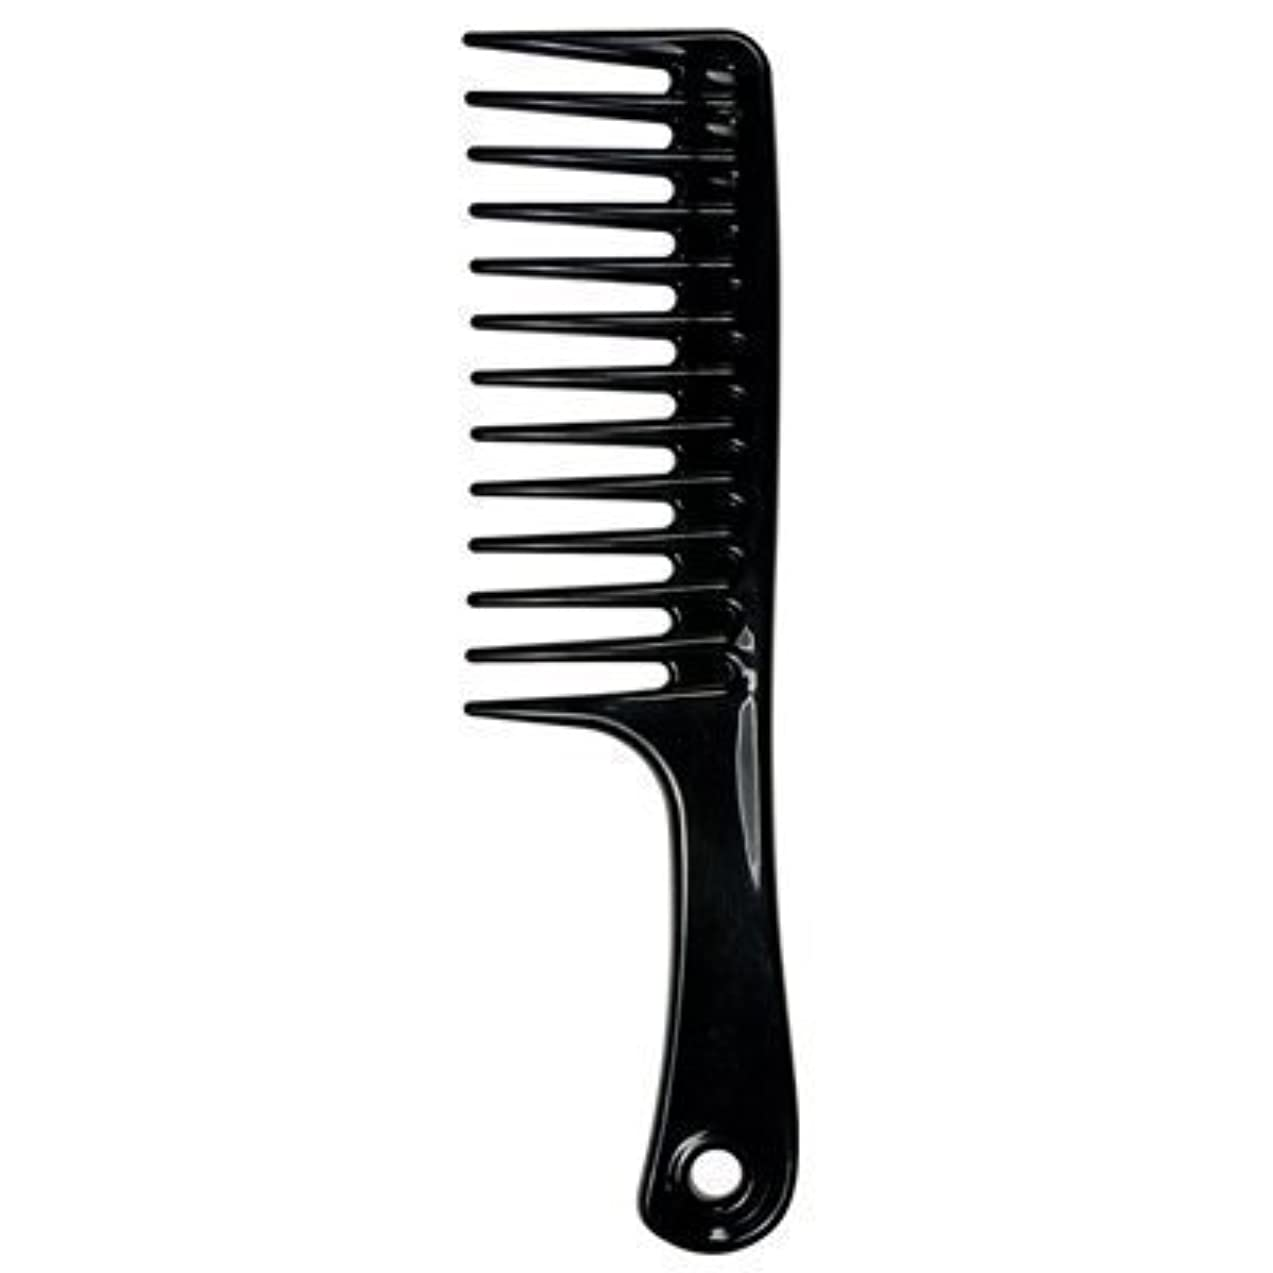 唇補助問い合わせLarge Tooth Detangle Comb Shampoo Wide Teeth Comb Hair Salon Shampoo Comb Unbreakable 9 1/2